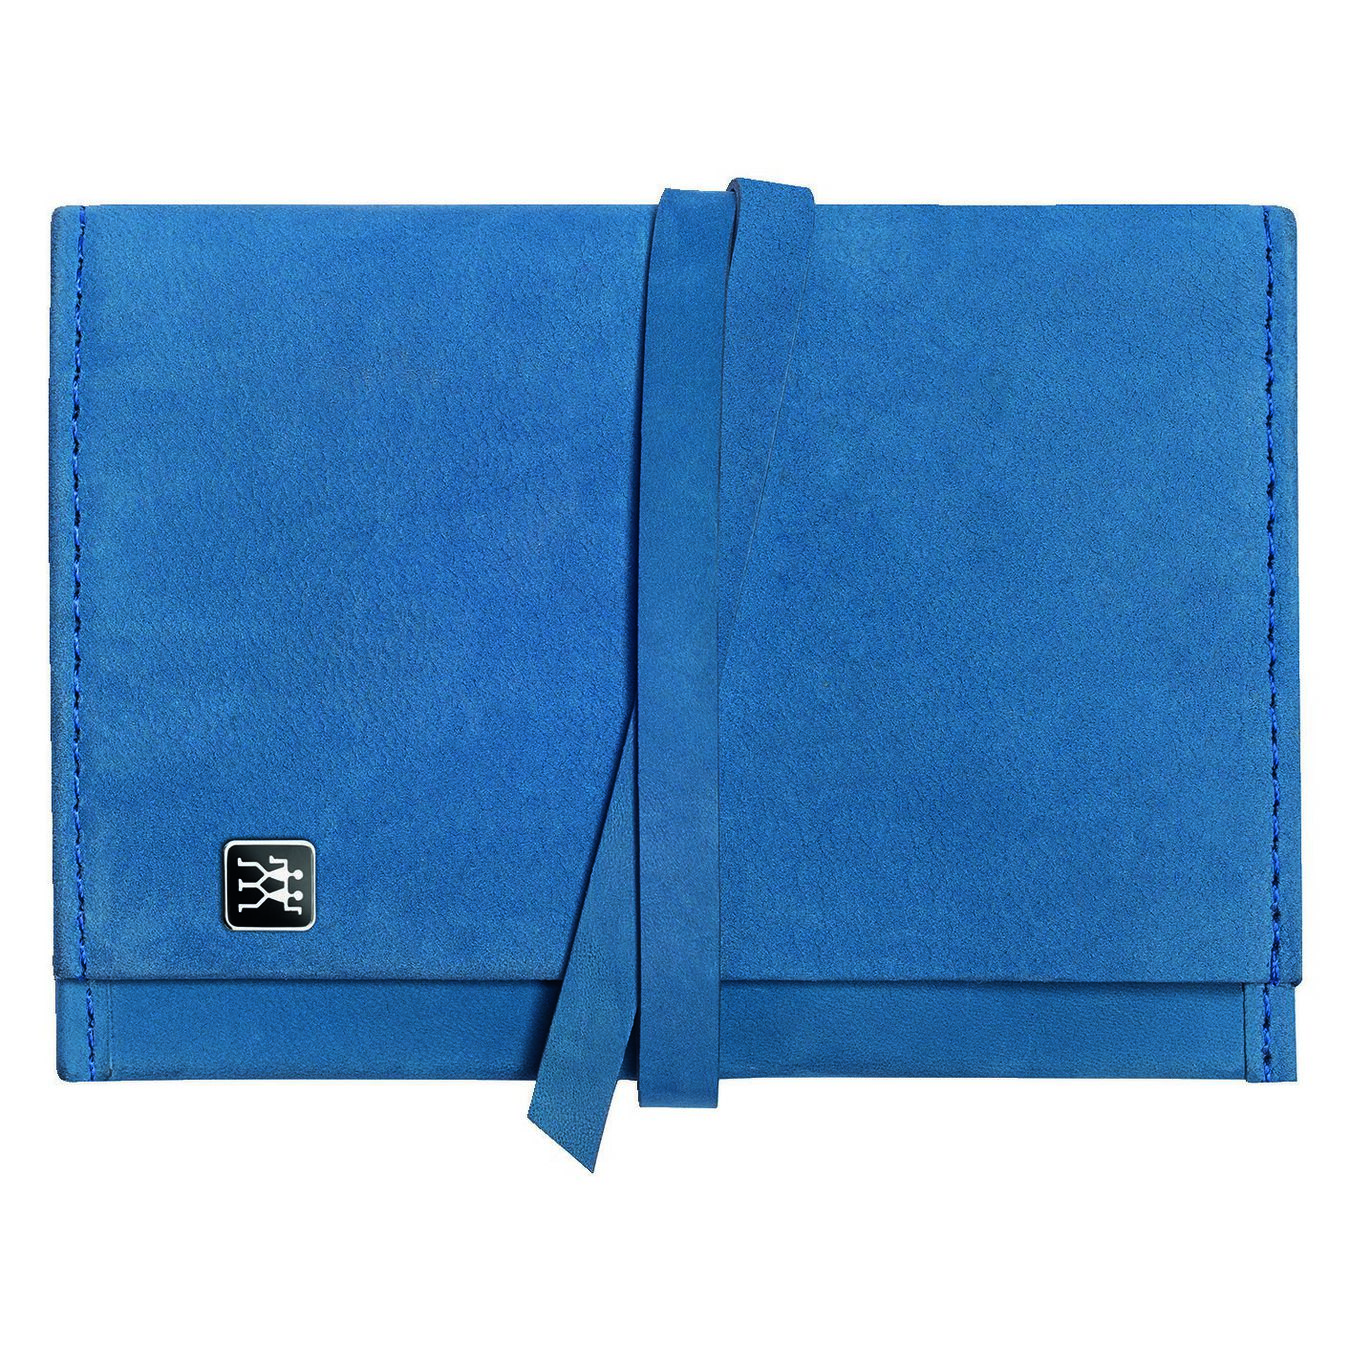 Pocket case, 5 Piece | Stainless steel | blue,,large 1